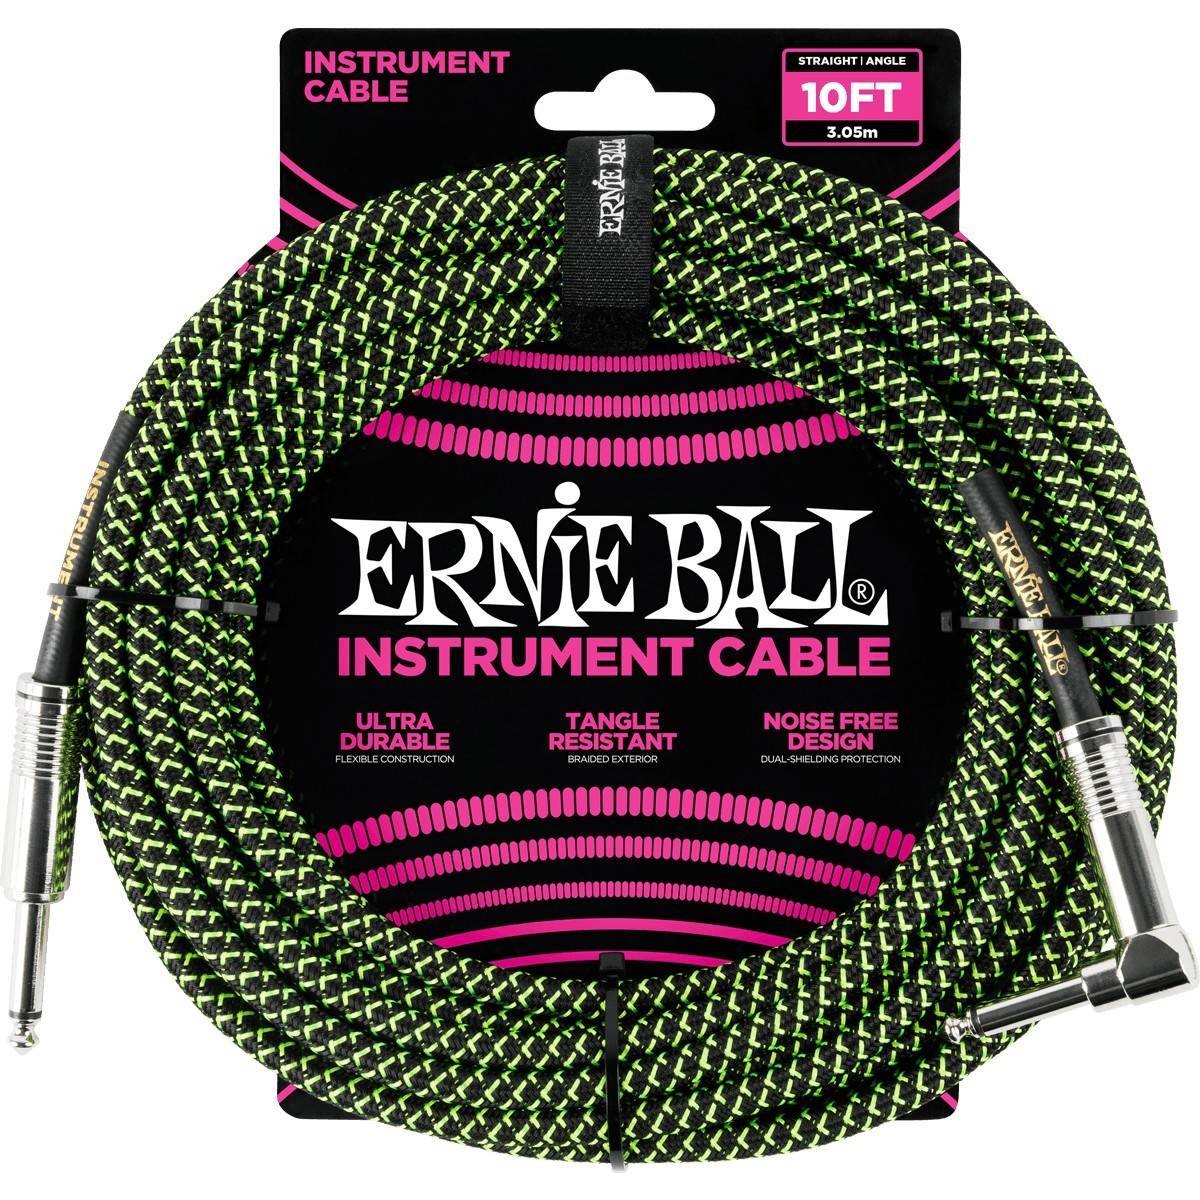 ERNIE BALL Cable Instrument Gaine Tressee Droit Coude 3 05 M Vert